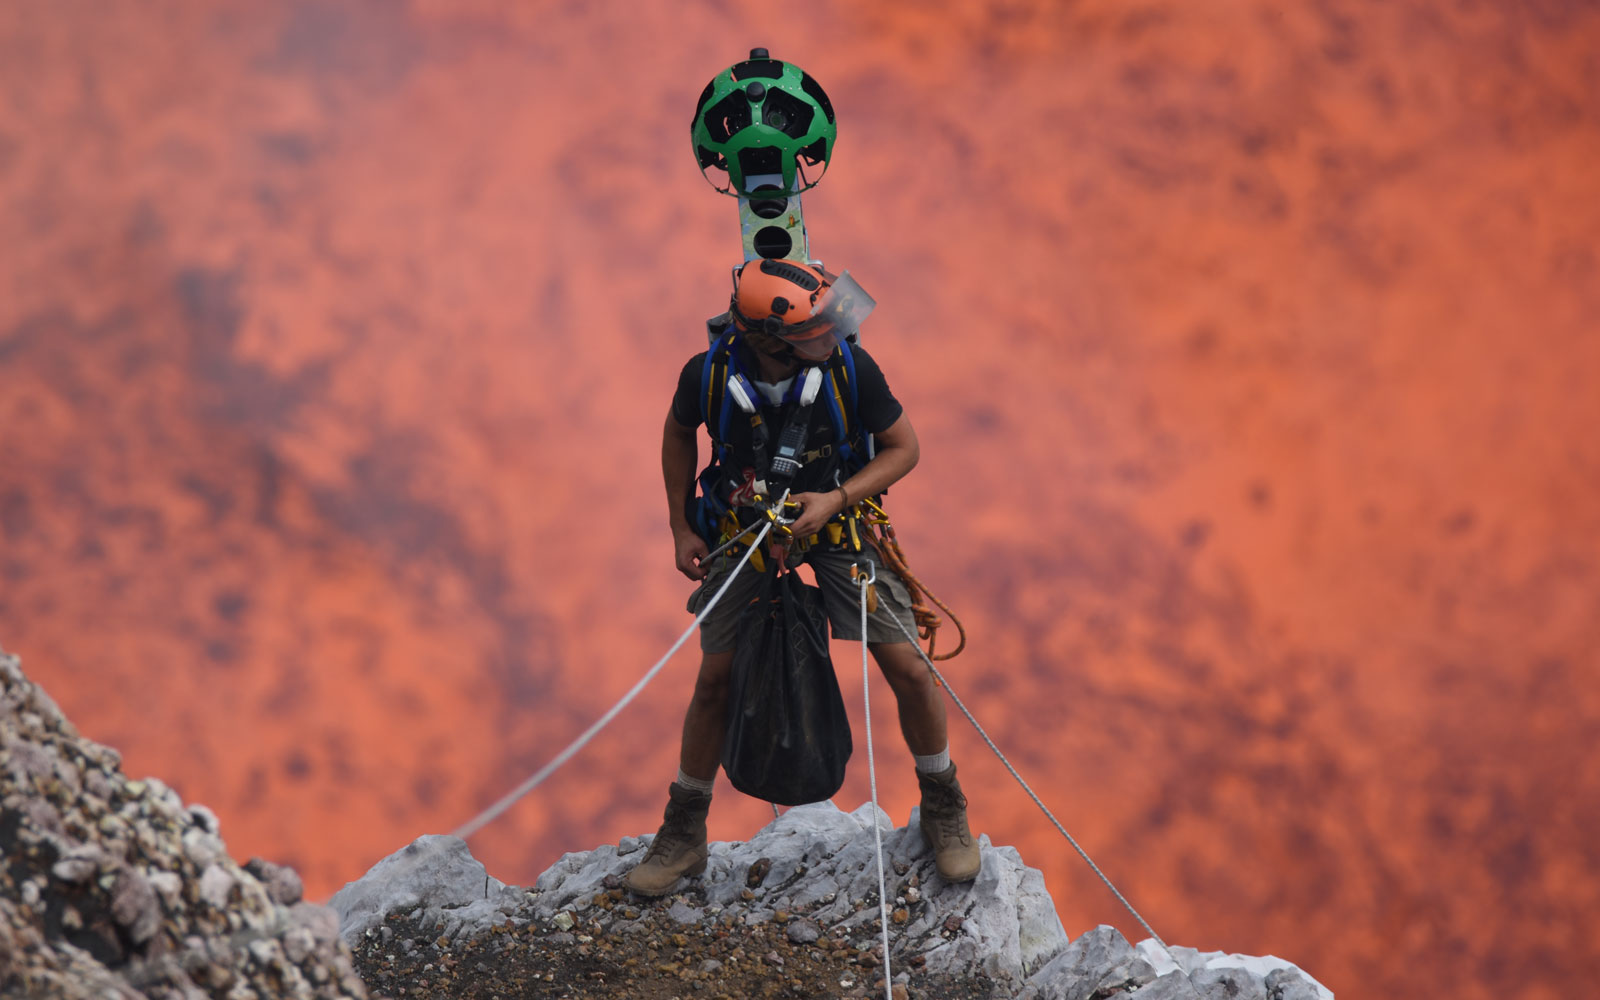 Go inside an active volcano with Google Street View.